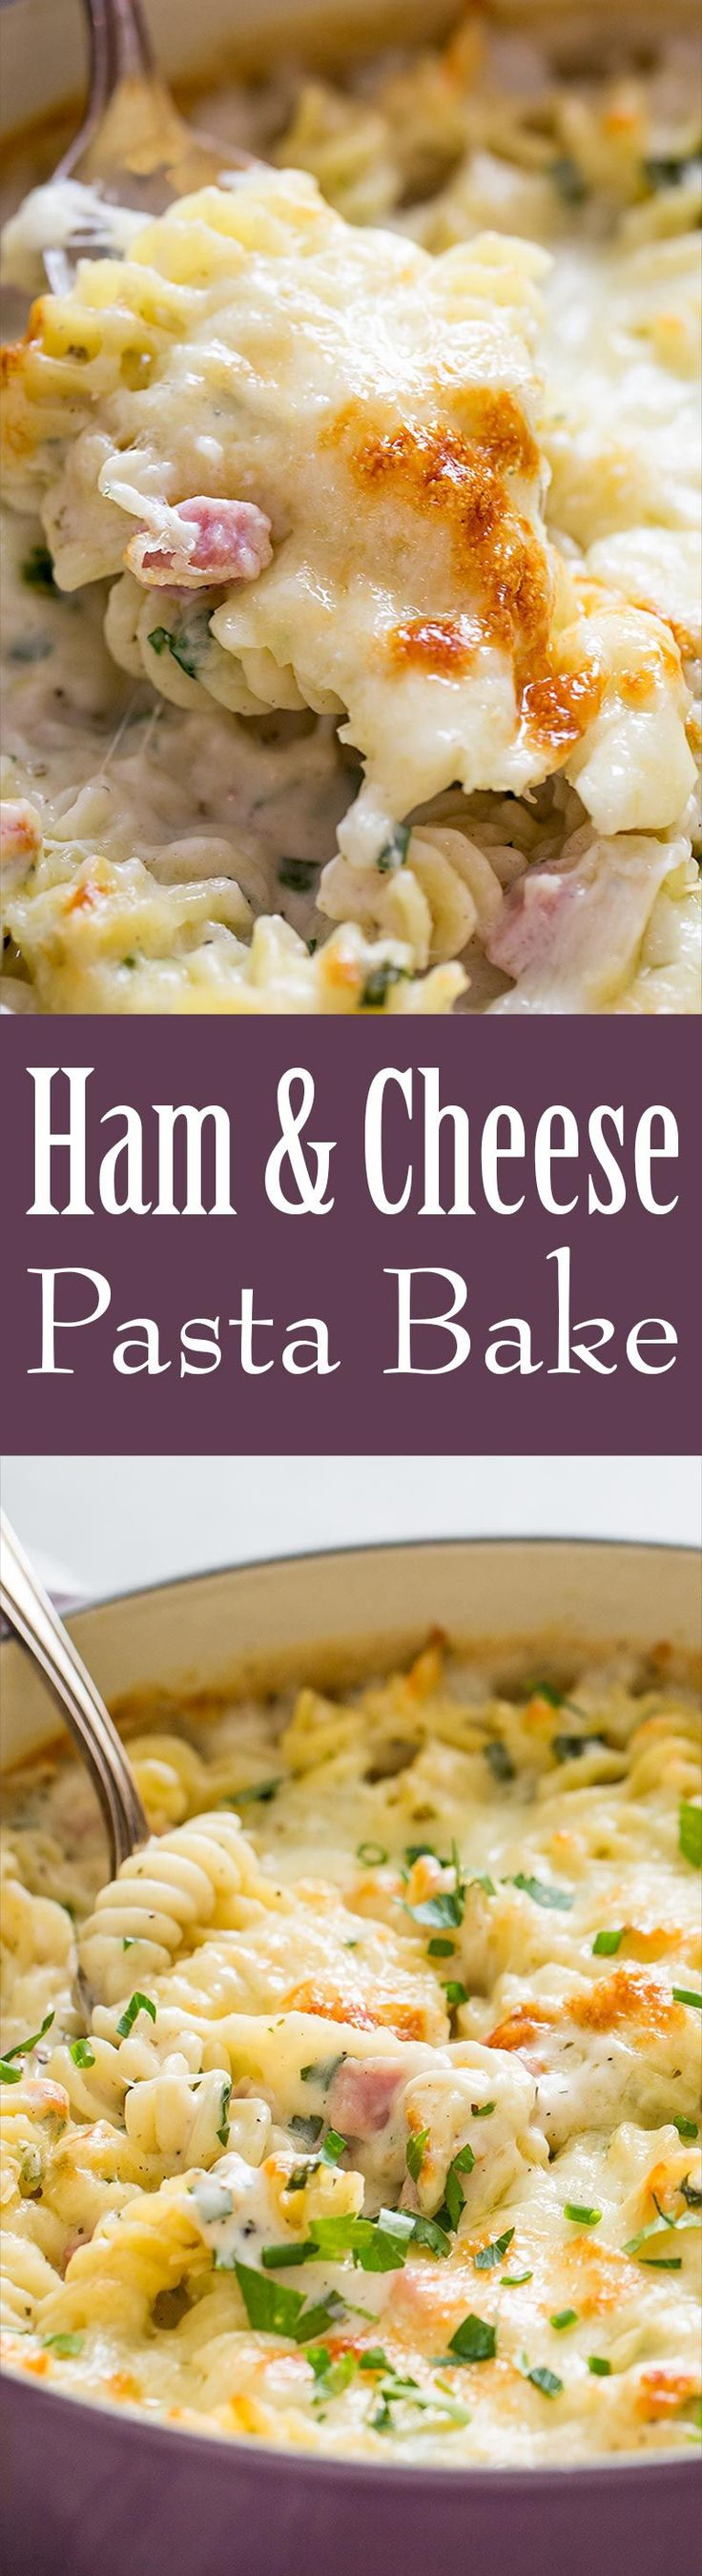 Creamy, cheesy Ham and Cheese Pasta Bake with Parmesan, Mozzarella, and ham. Perfect dinner for a hungry crowd!